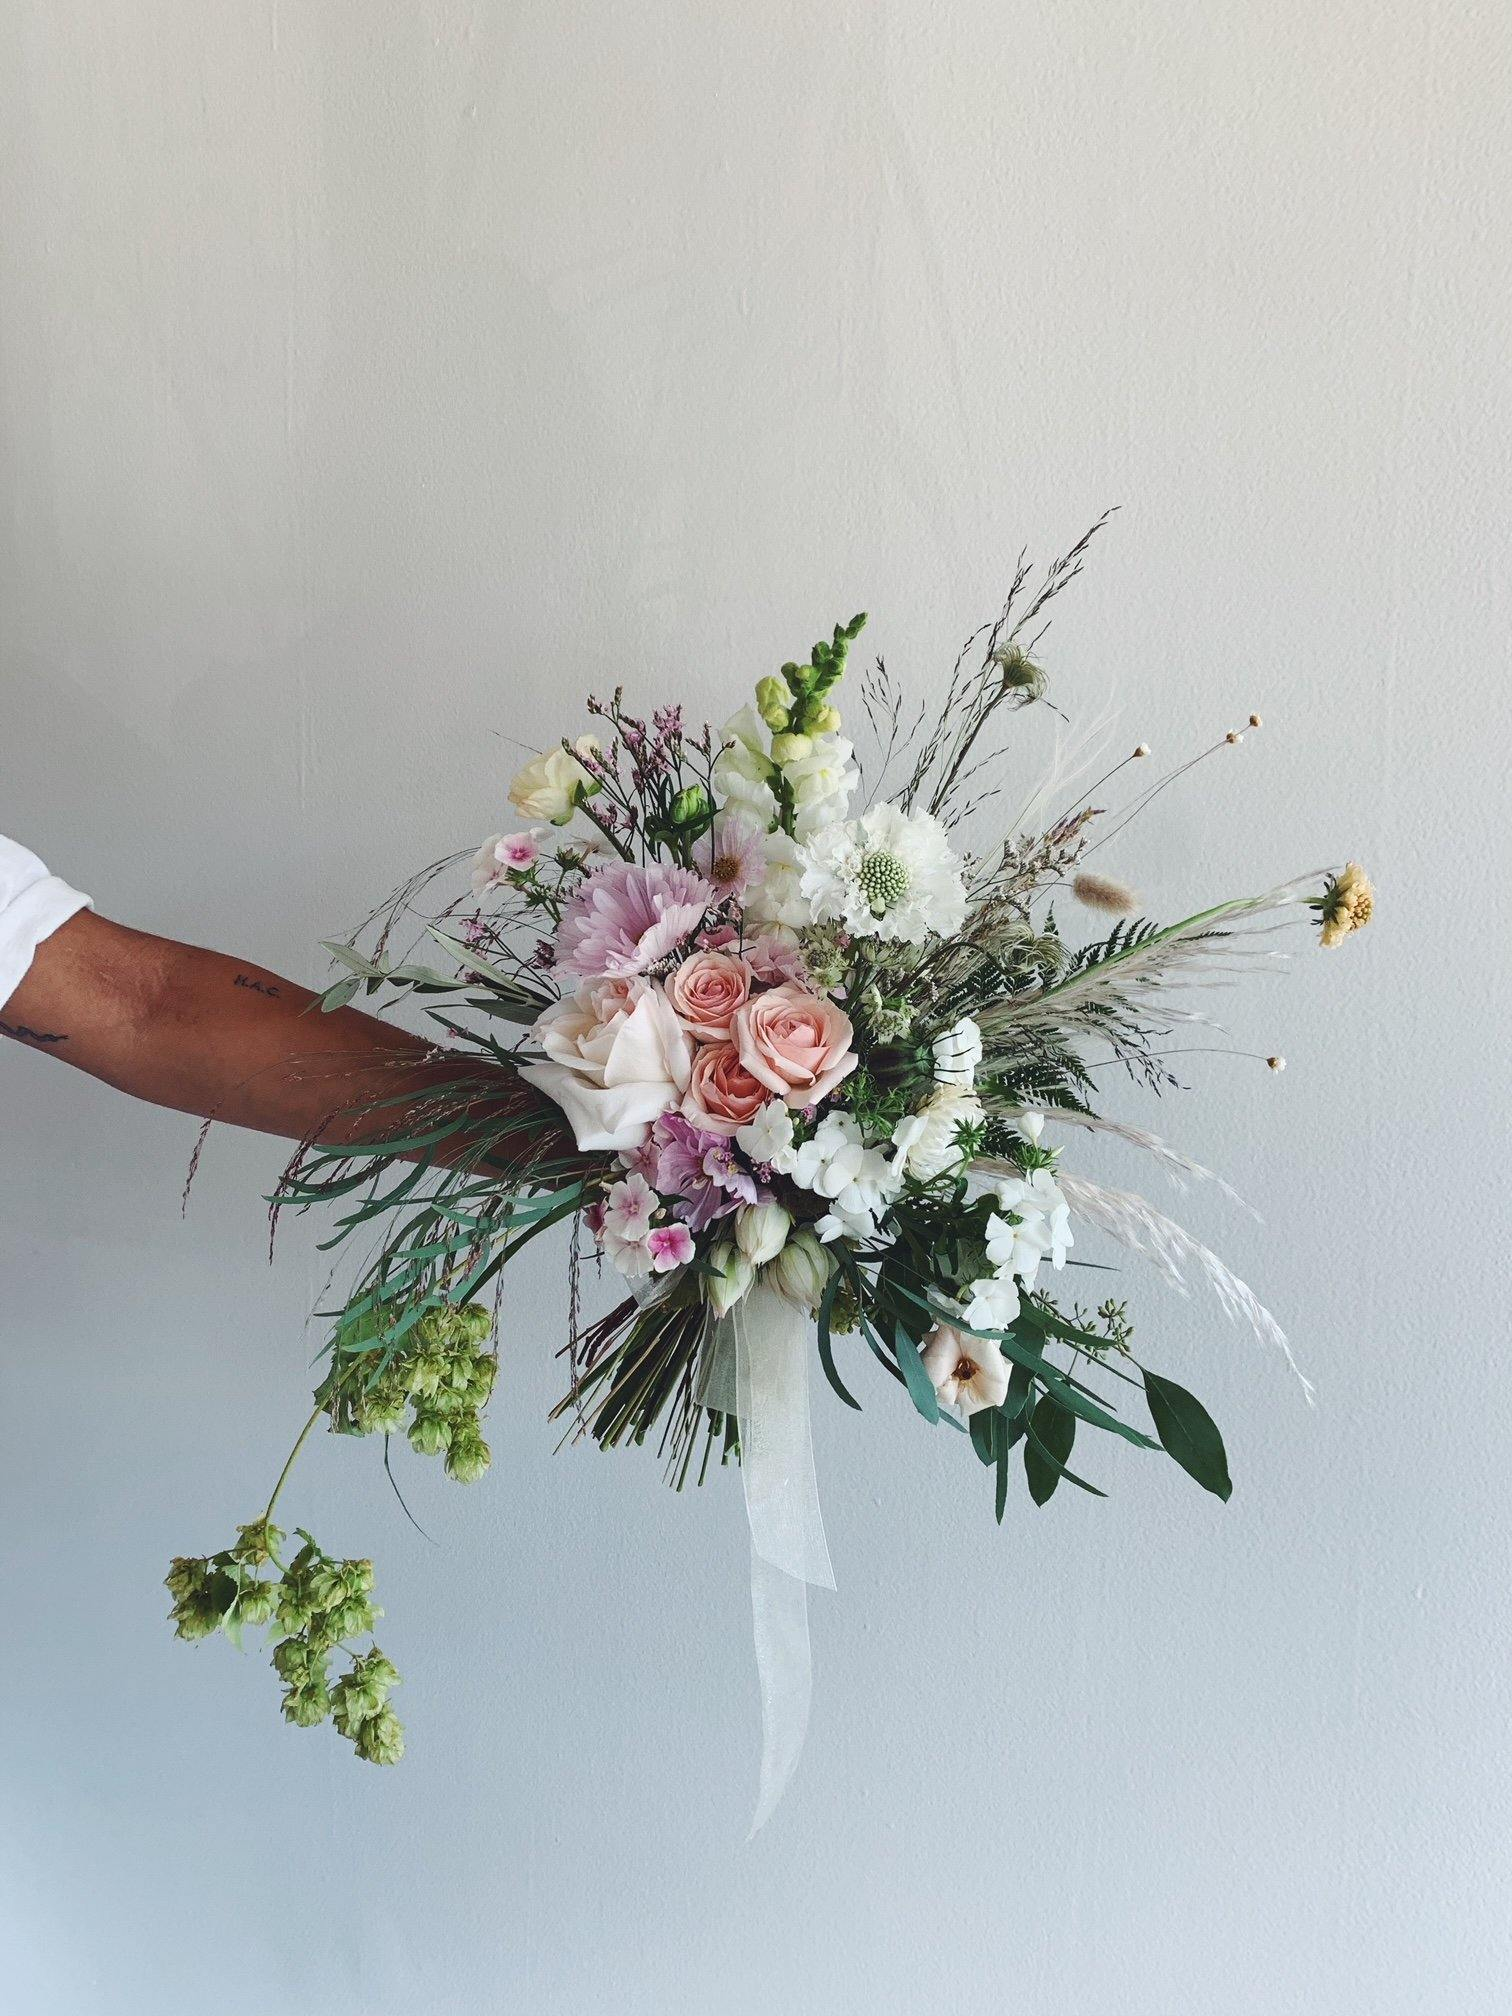 Weddings - The Signature Bridal Bouquet - The Wild Bunch Weddings - The Wild Bunch Florist - Vancouver Flower Shop Delivery